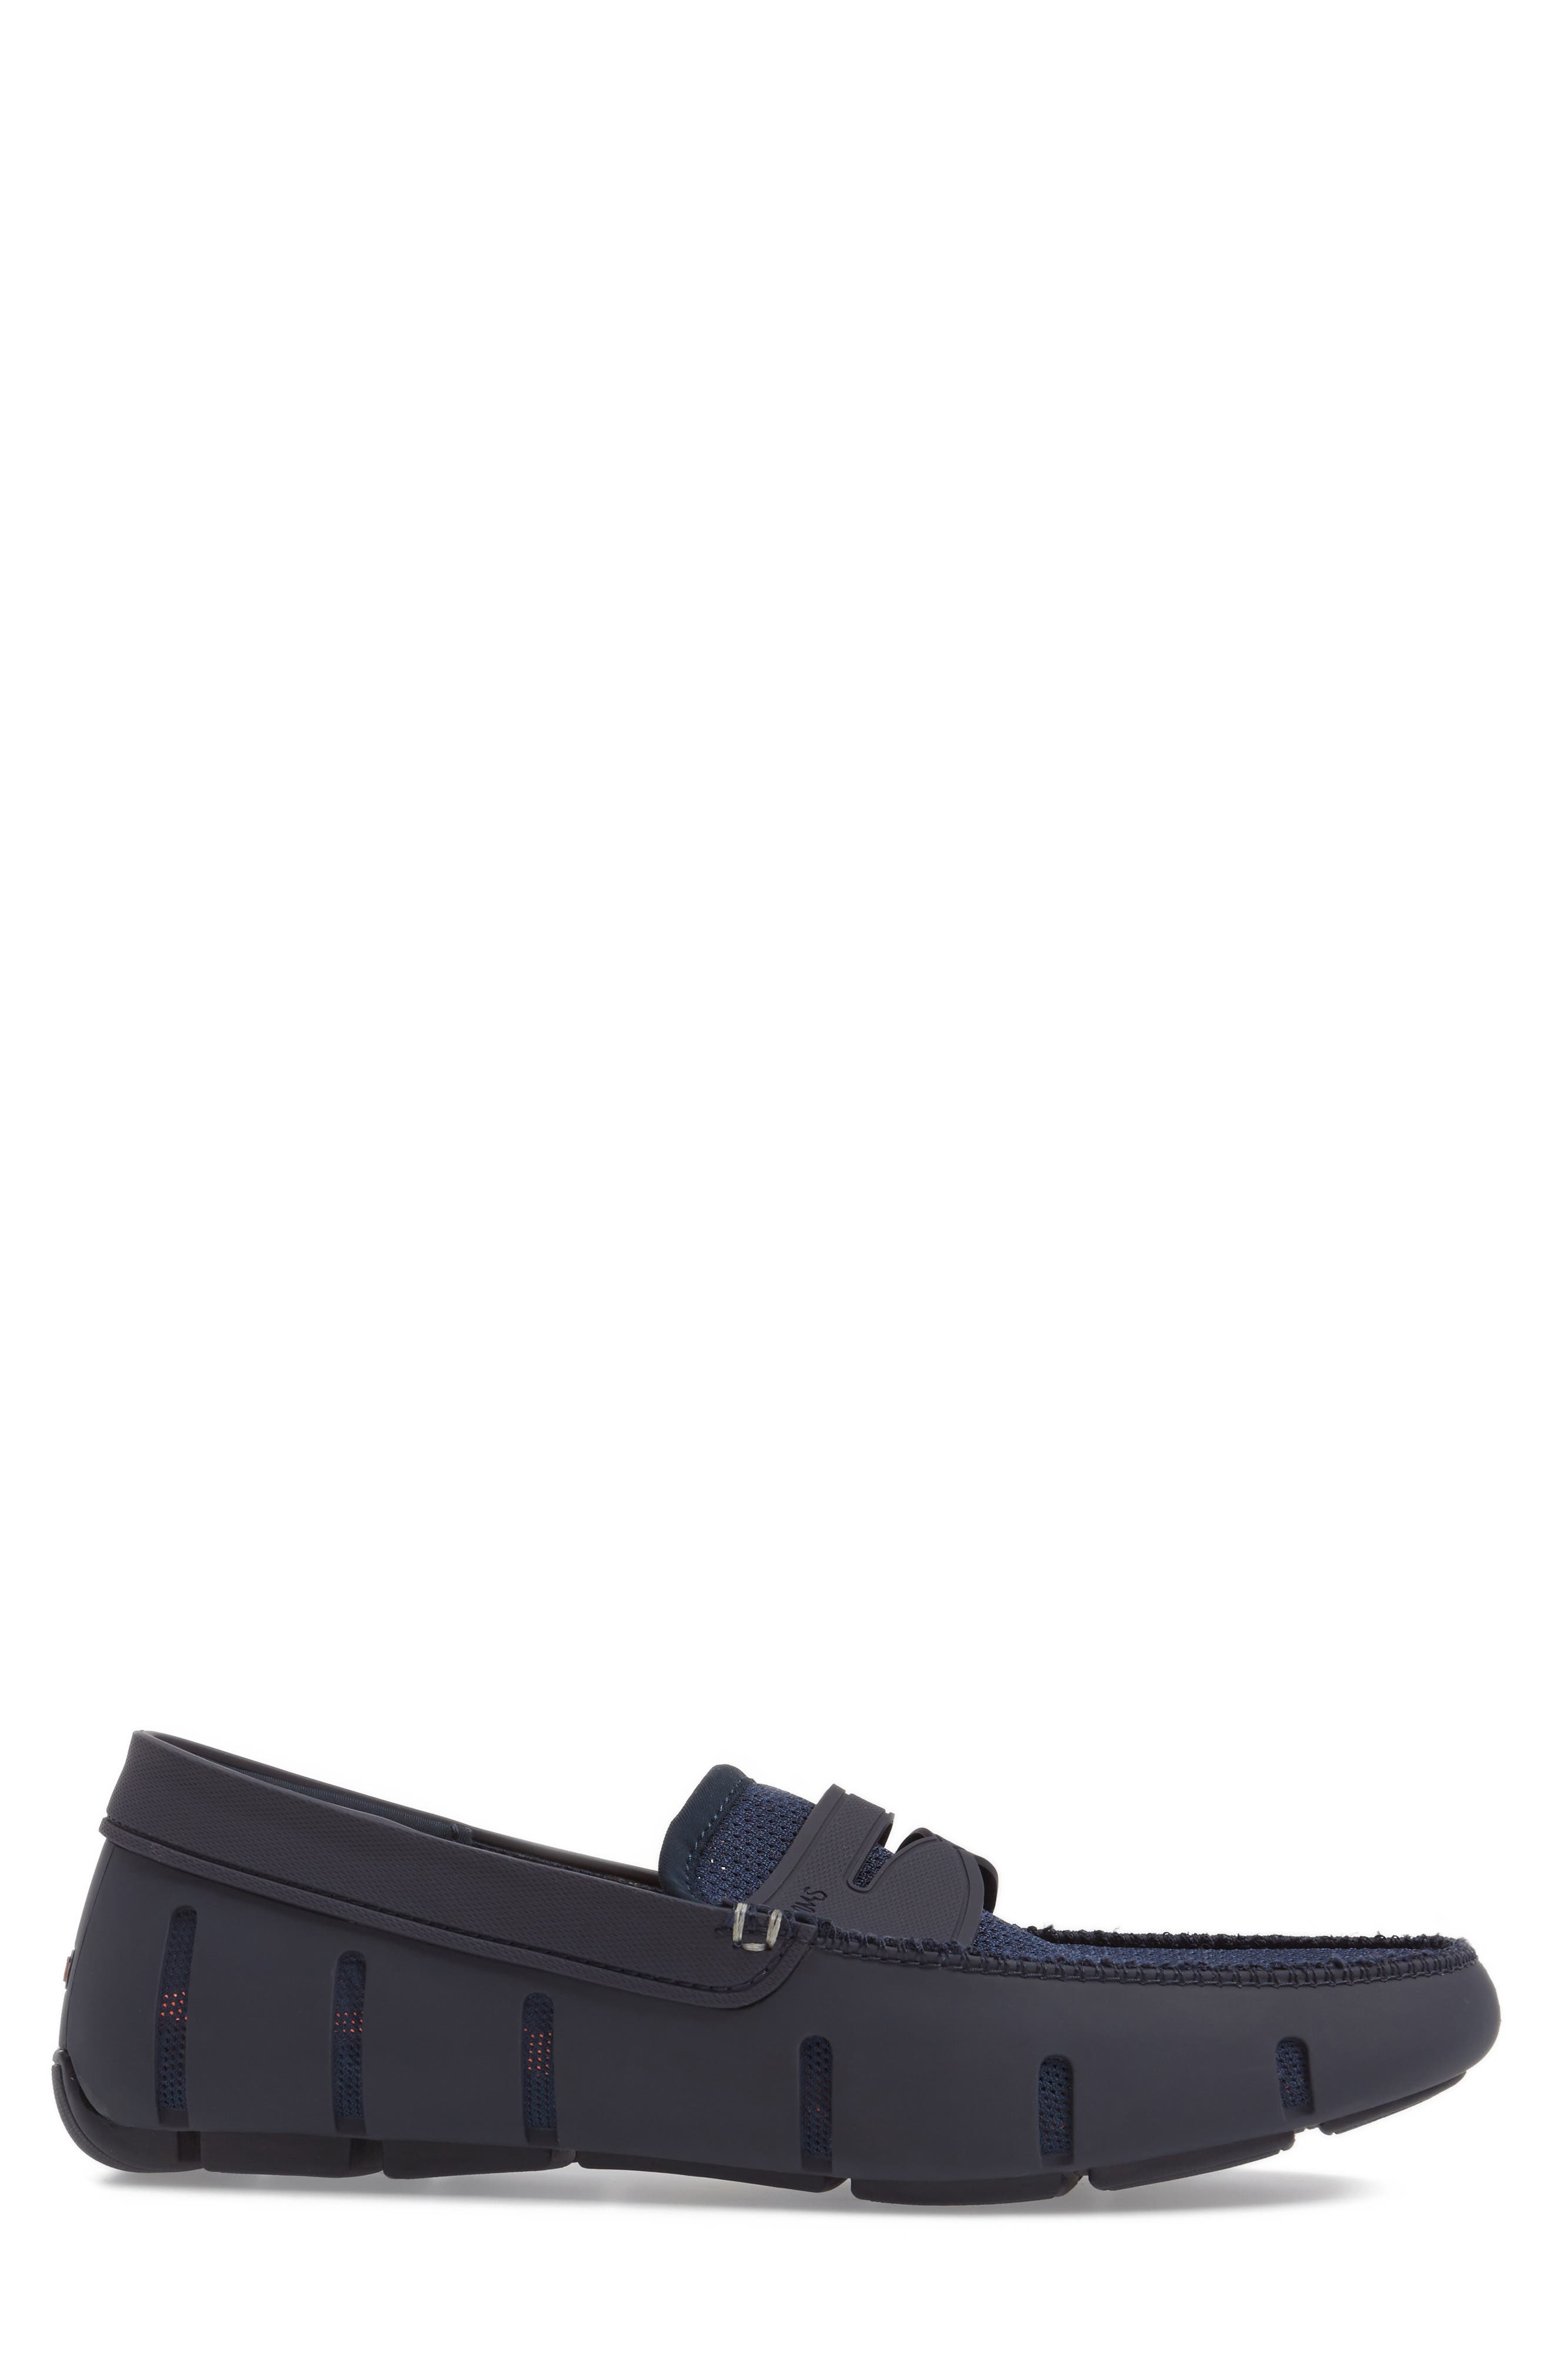 Penny Loafer,                             Alternate thumbnail 3, color,                             NAVY/NAVY